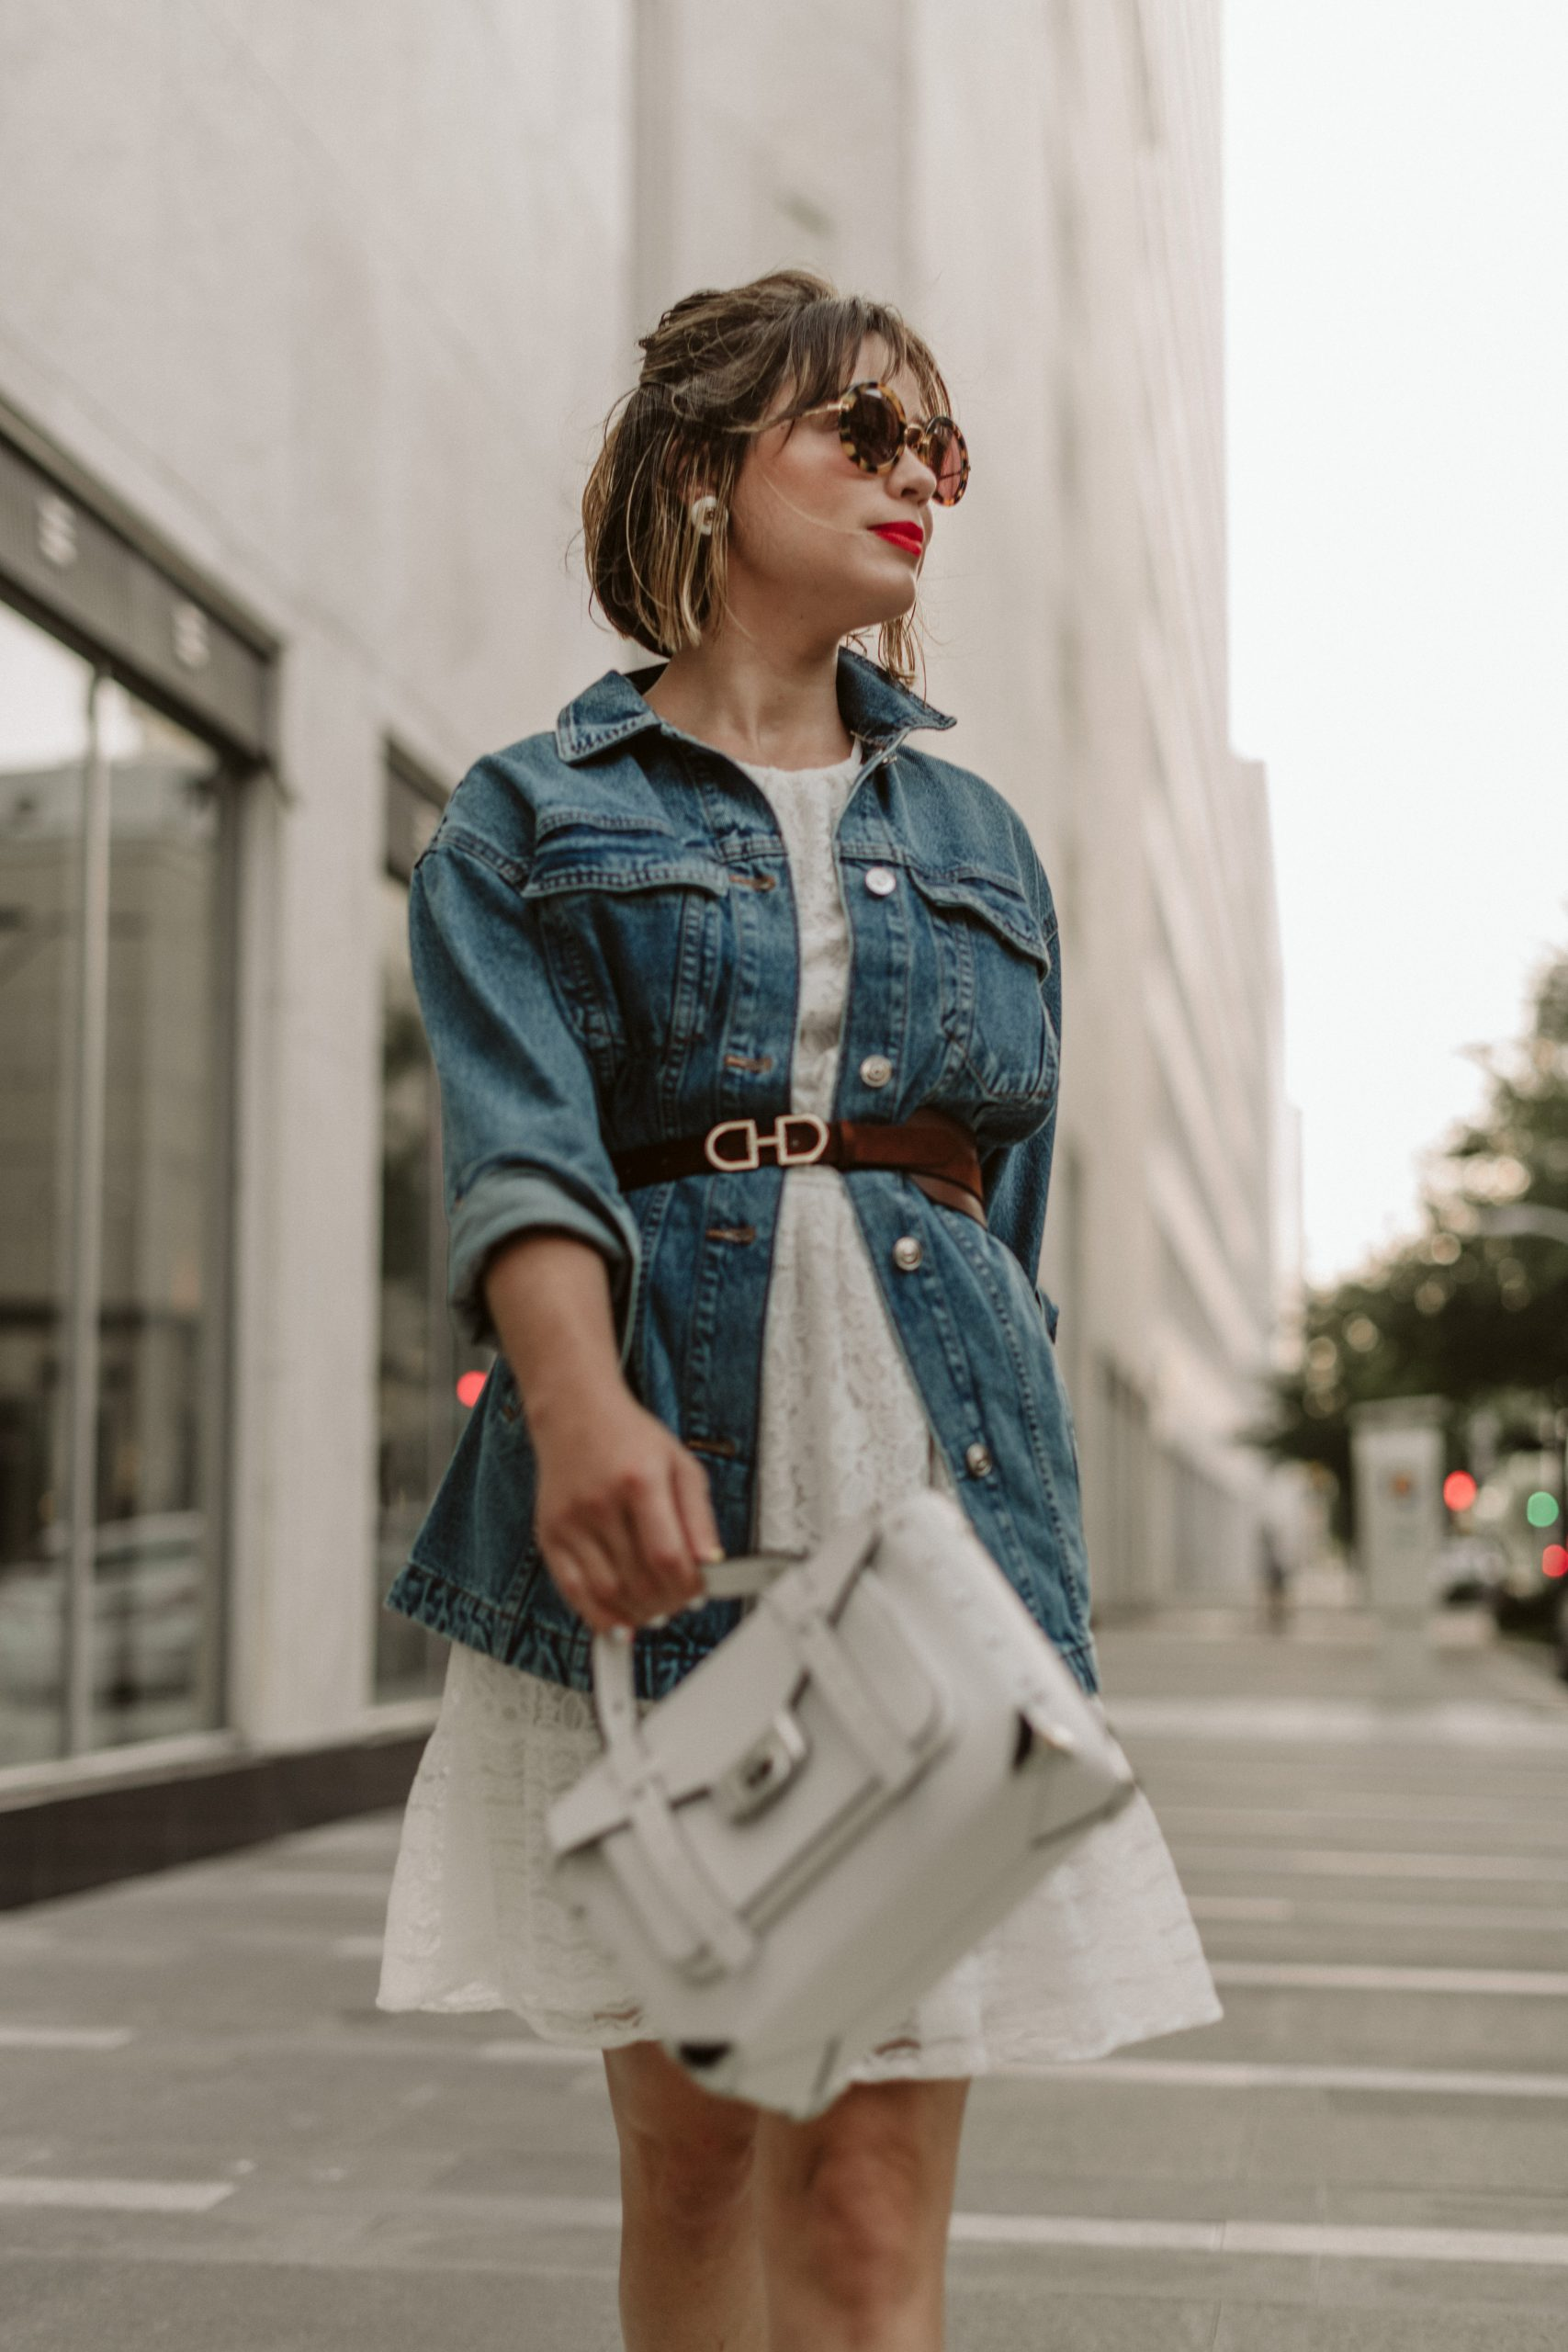 Houston fashion blogger Elly Brown wears a white lace dress with a belted denim jacket